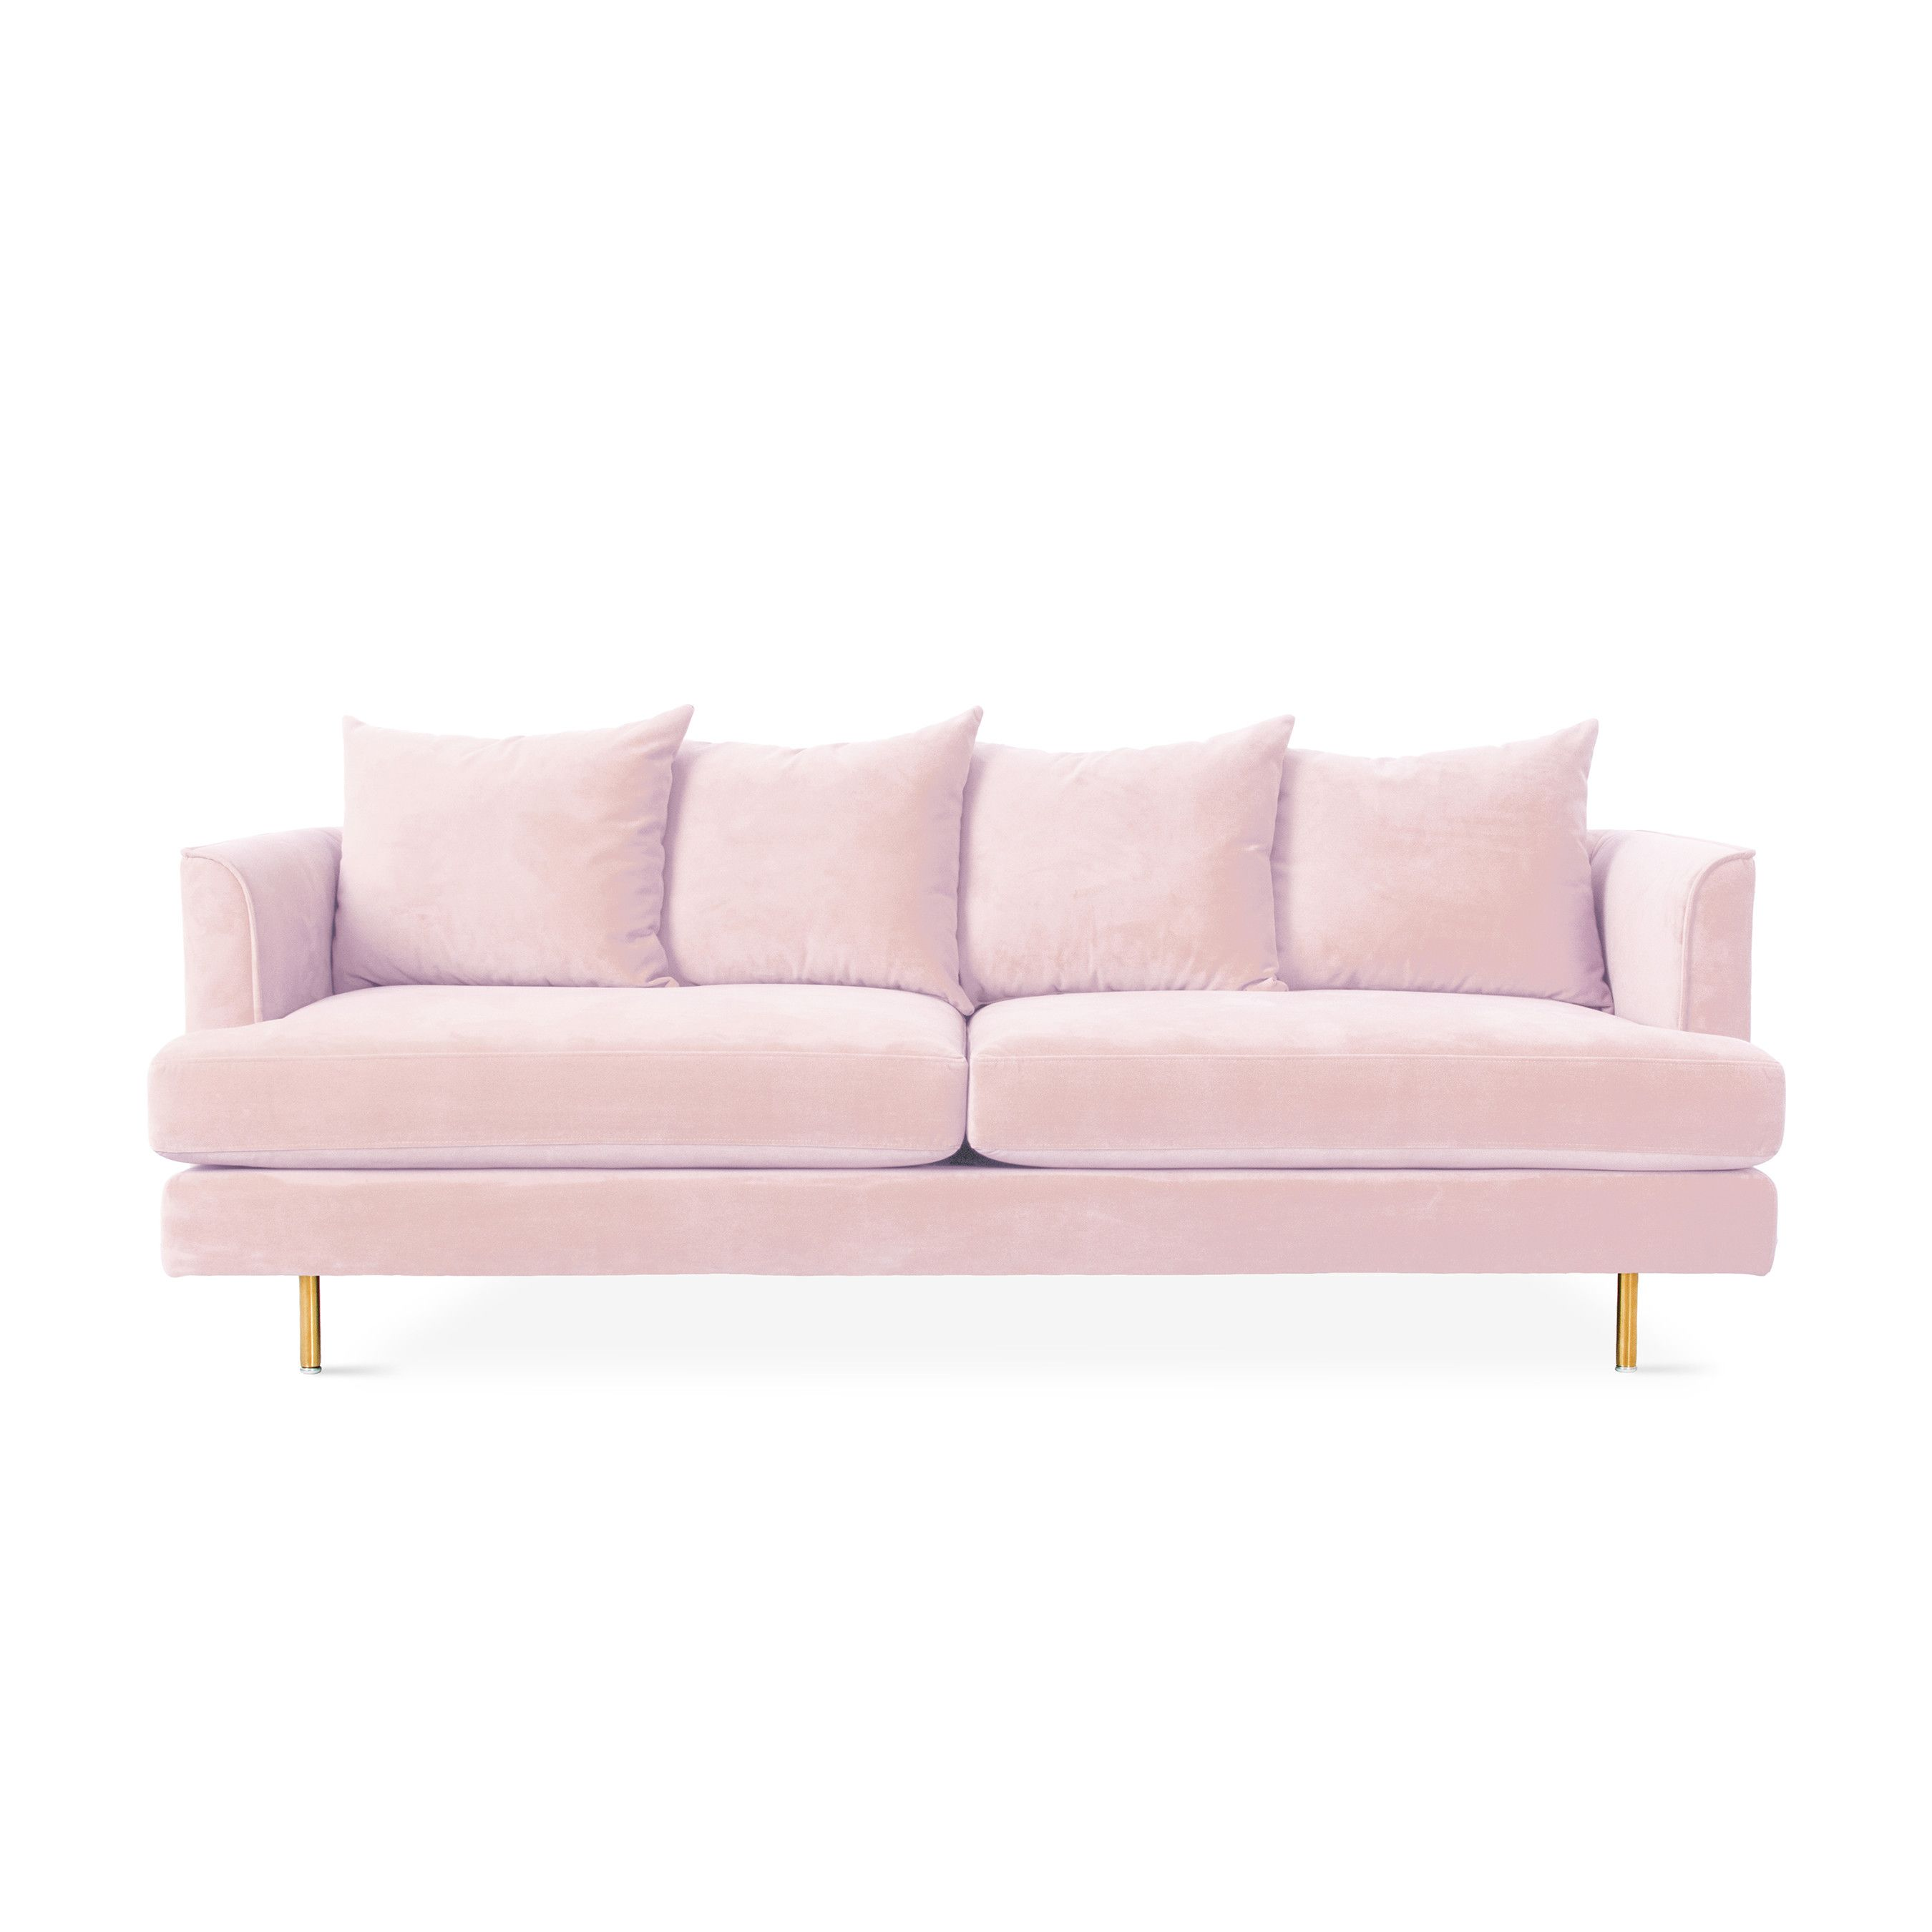 How to Rock Not e but Two Pink Sofas in Your Home